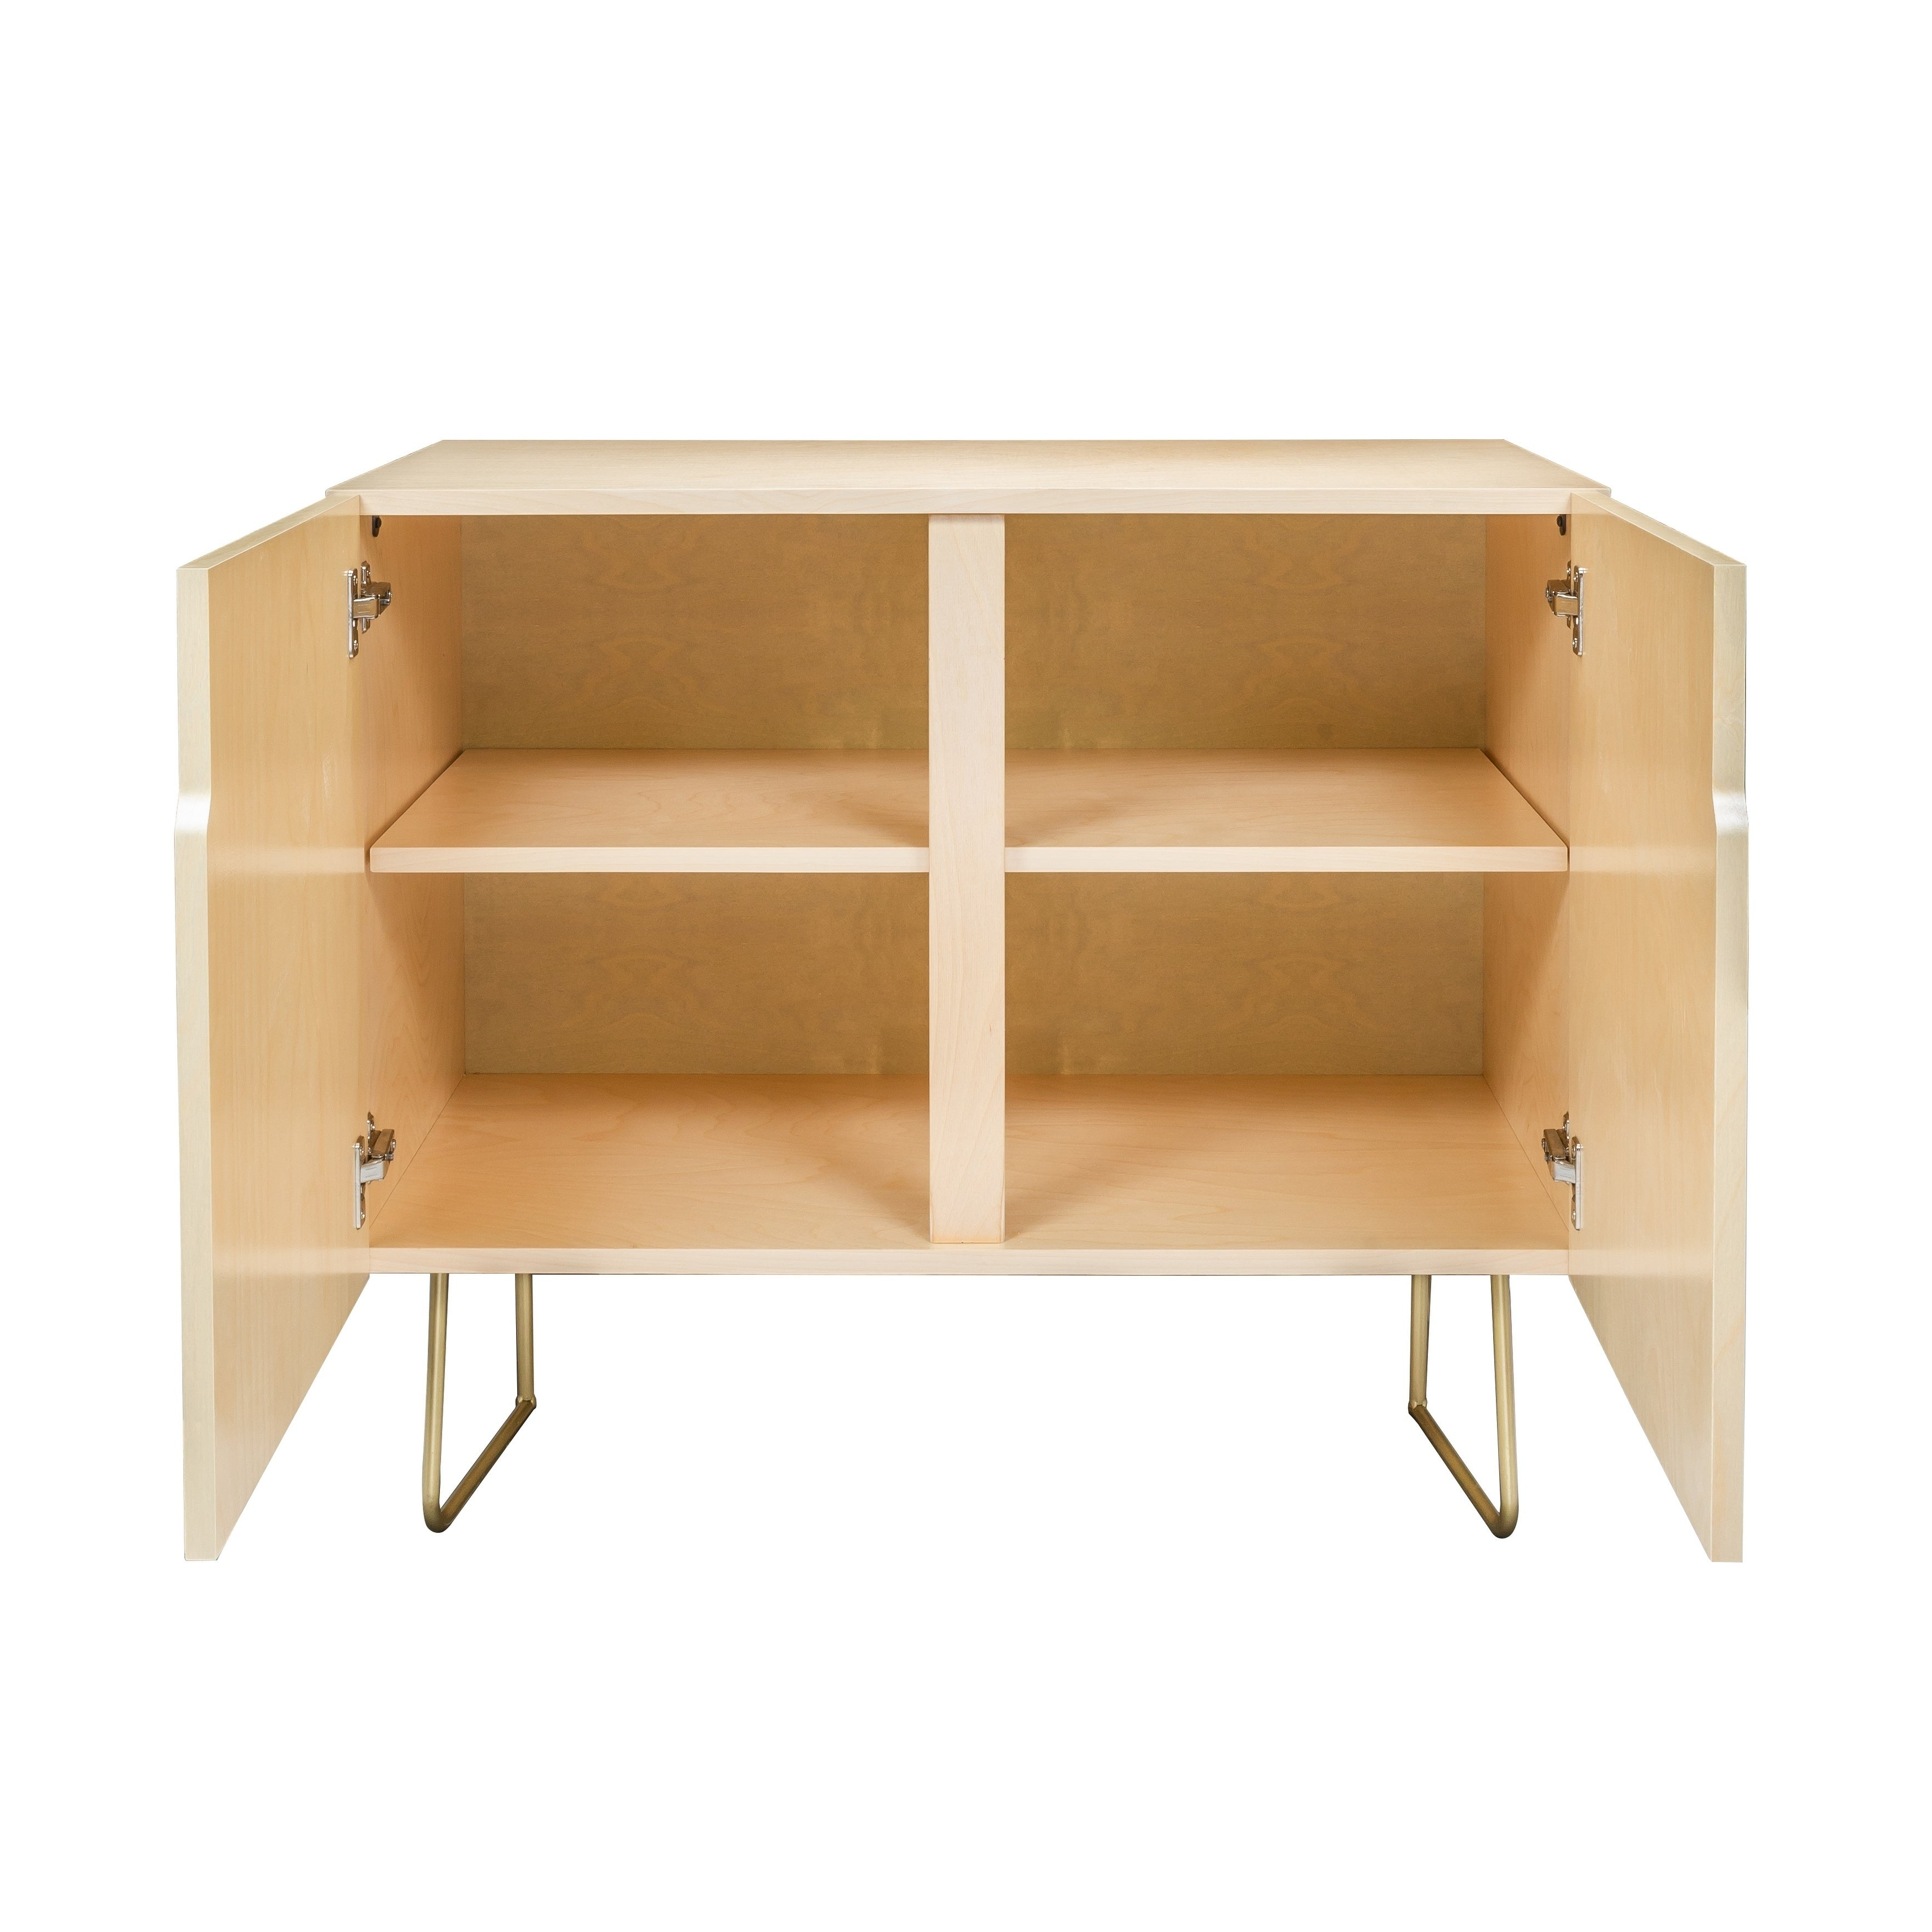 Deny Designs Yellow Flora Credenza (Birch Or Walnut, 2 Leg Options) Throughout Yellow Flora Credenzas (View 13 of 20)